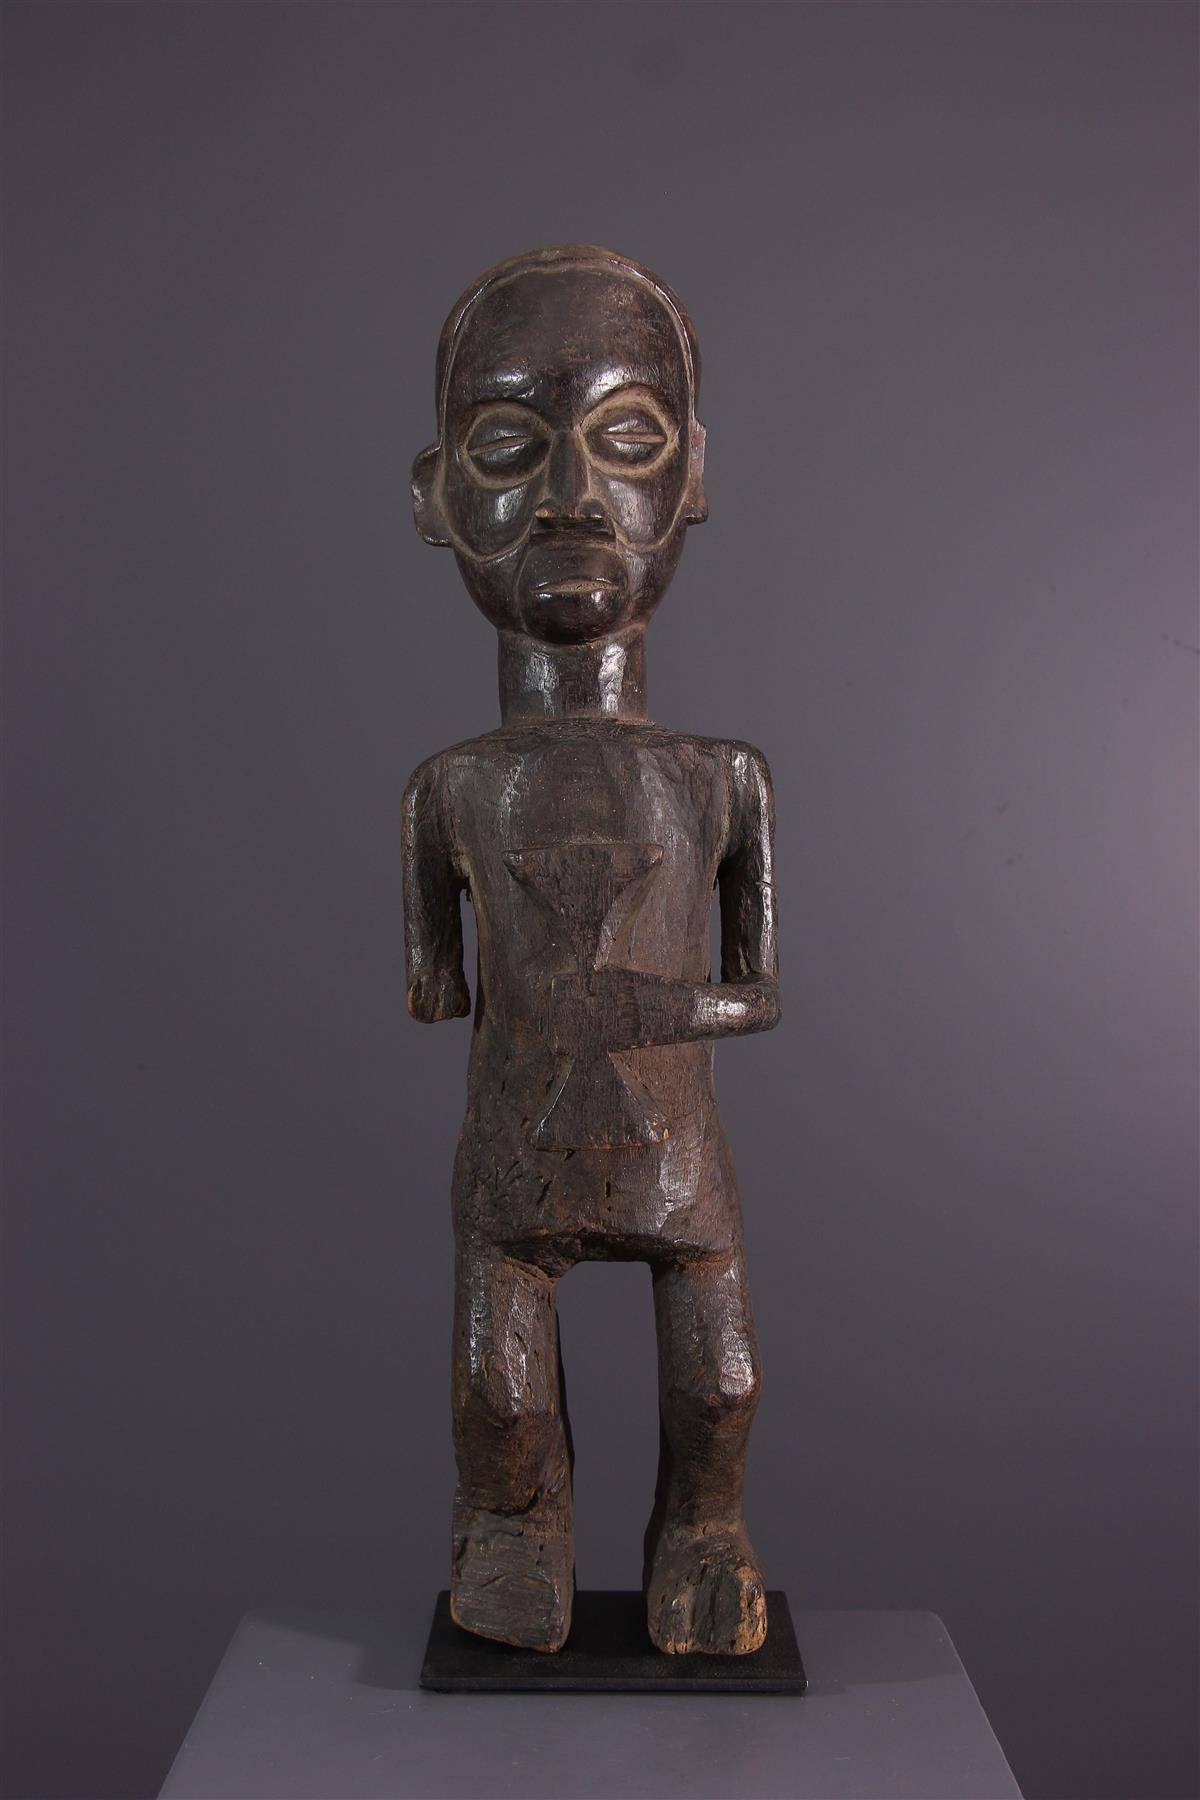 Holo statue - African art